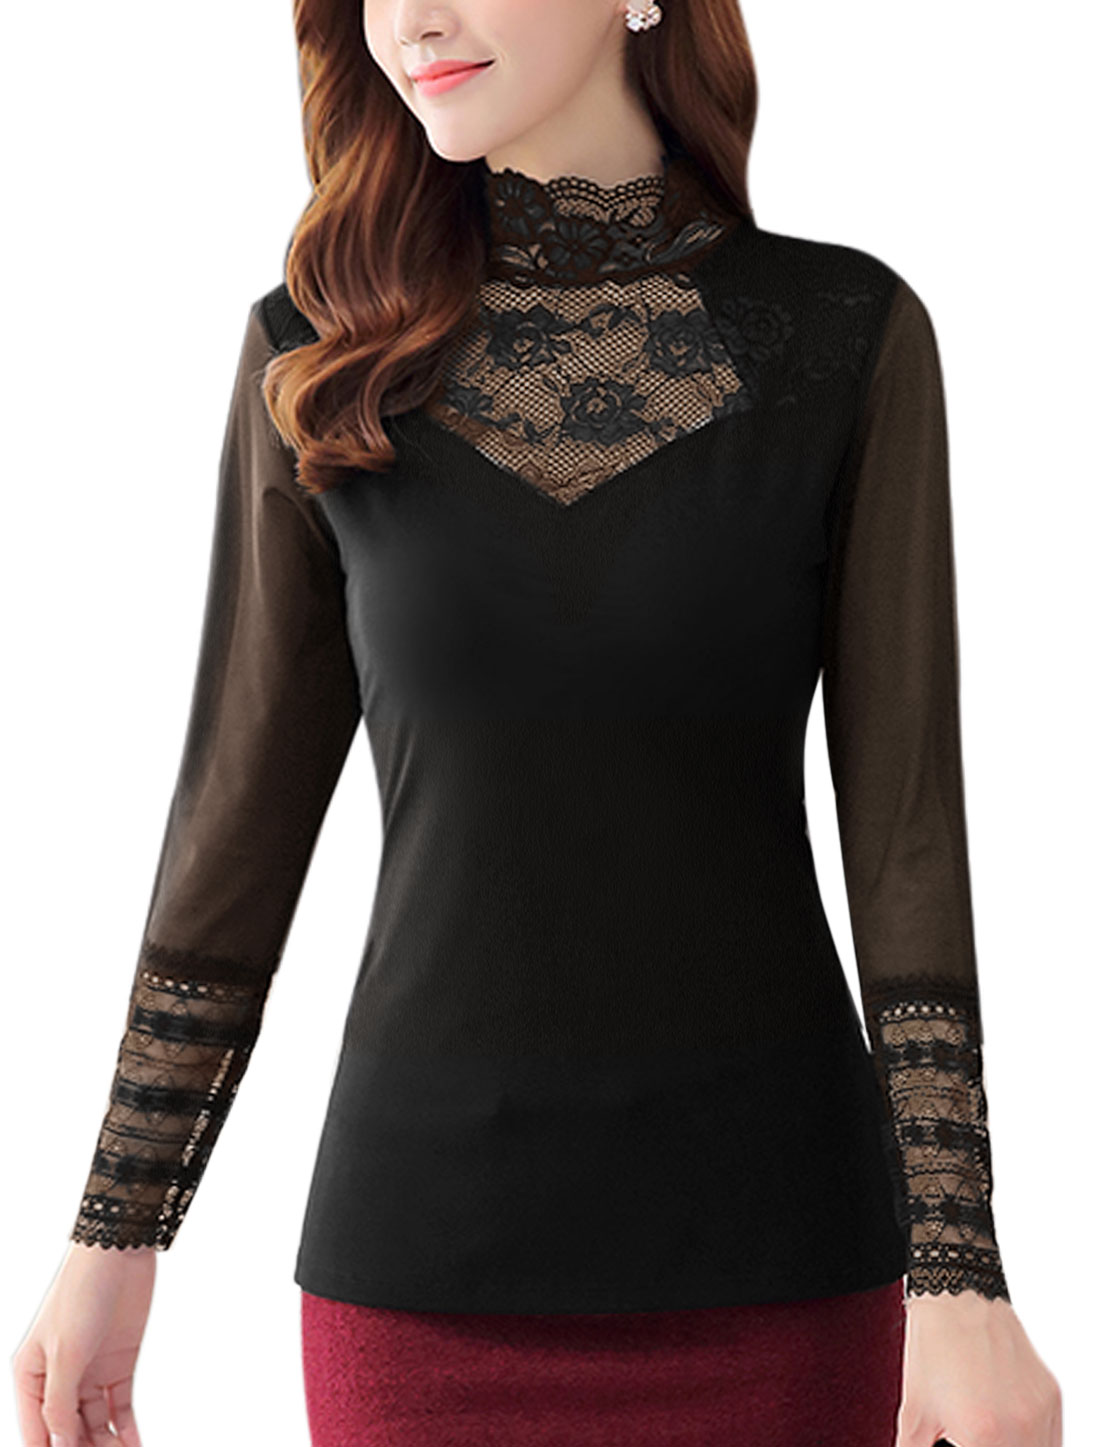 Women Scalloped Neck Long Sleeves Lace Panel Mesh Top Black M